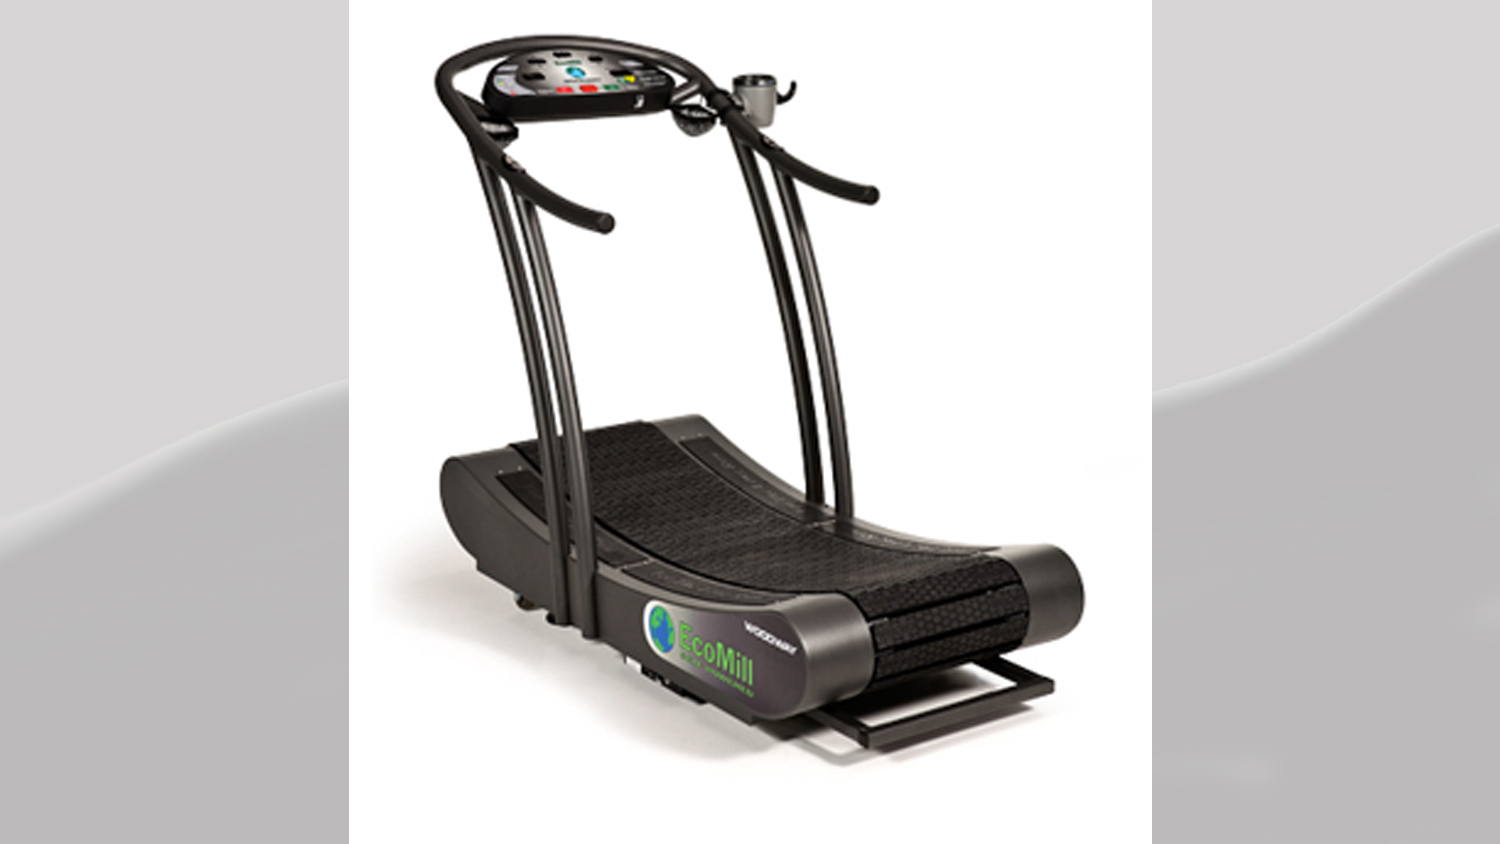 PHOTO: The Ecomill is a self-powered treadmill.